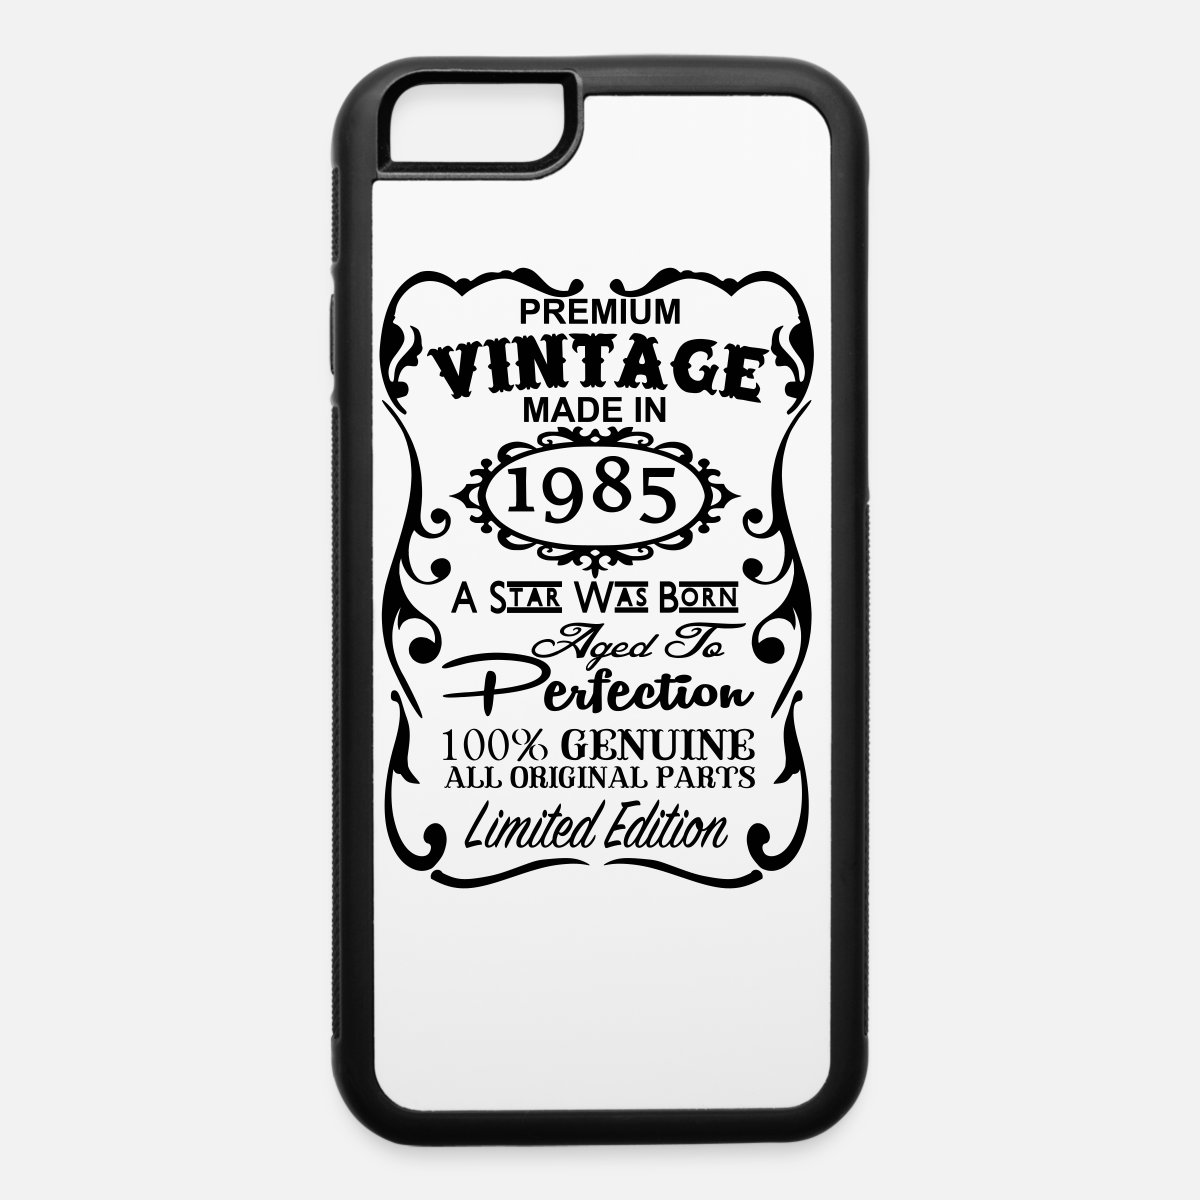 32nd iphone 8 case